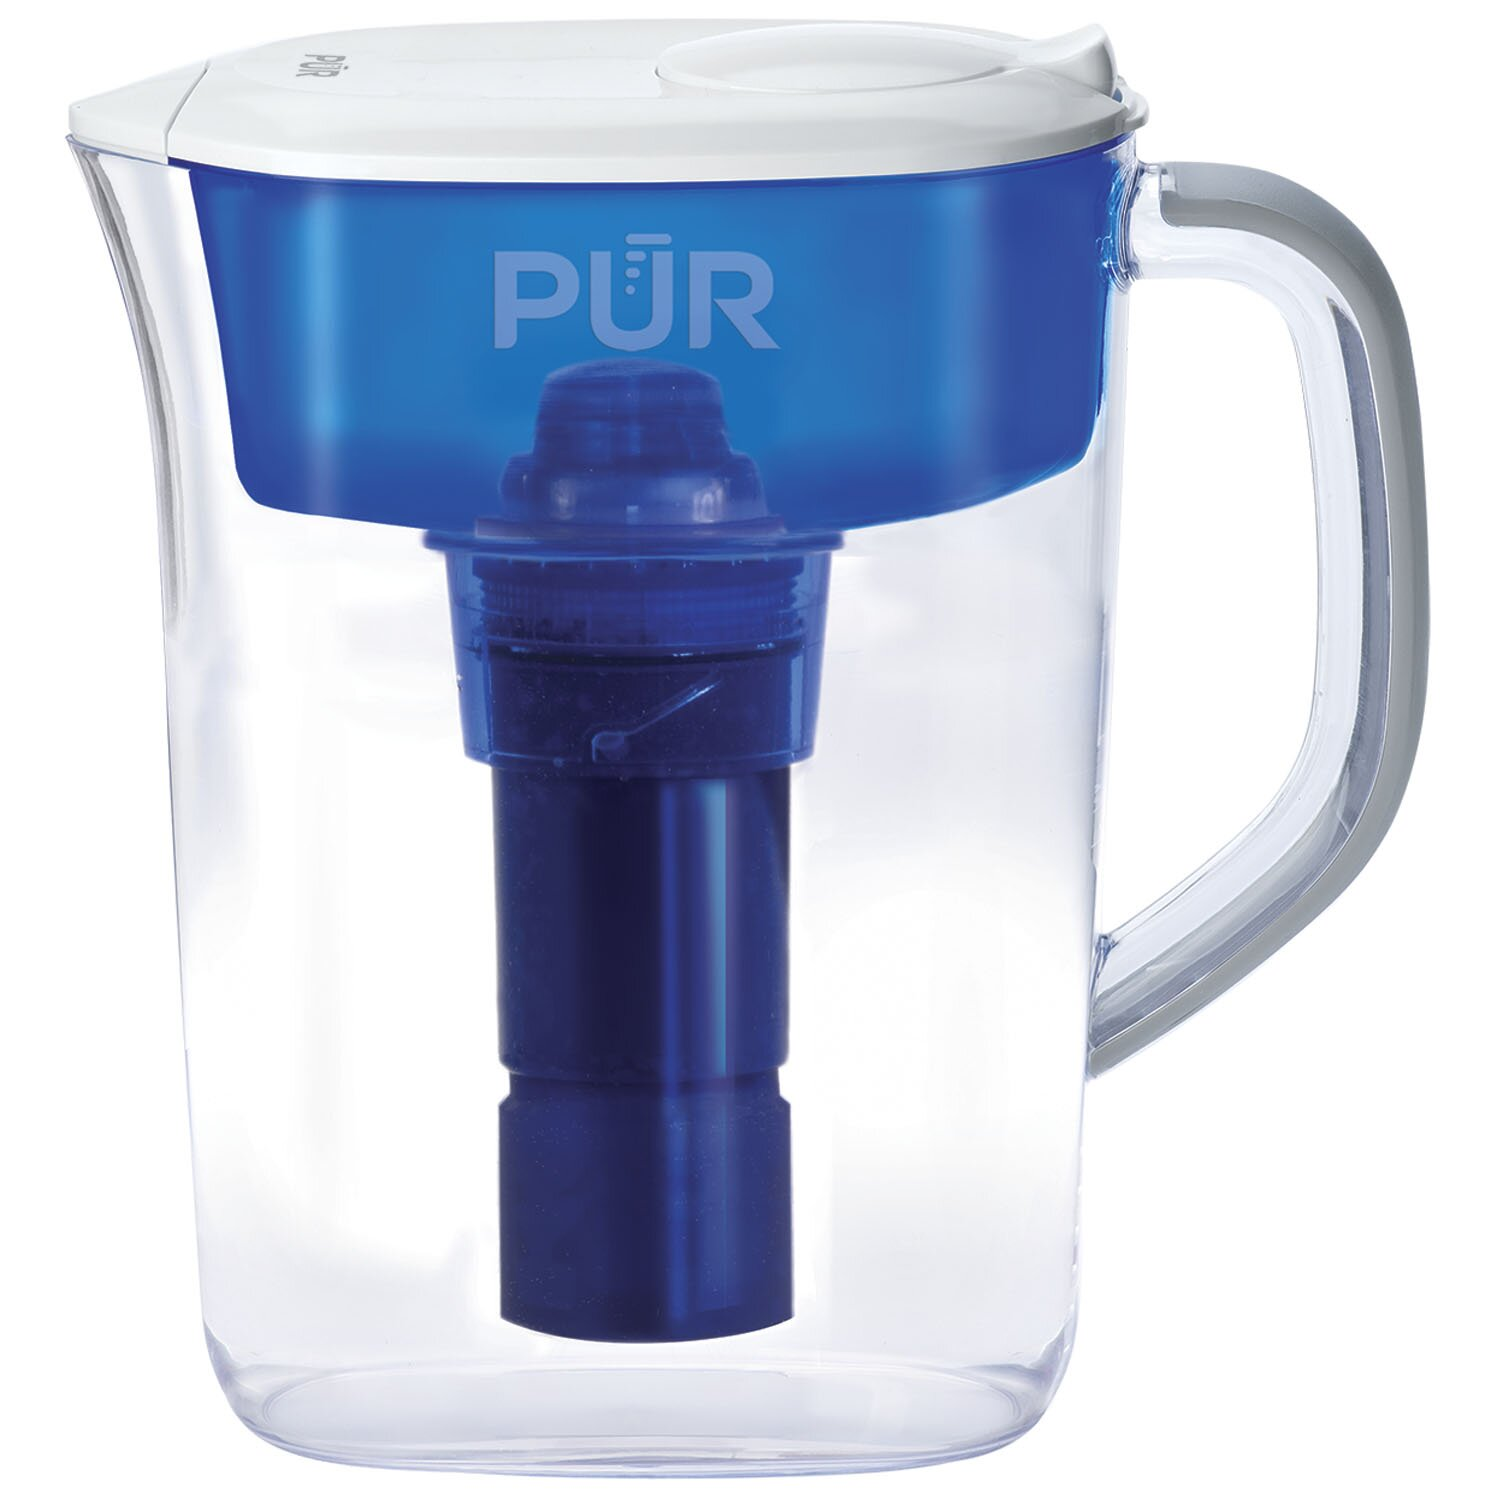 Compare Brita Pur Lead Reduction Water Pitcher Filter 3 Pk